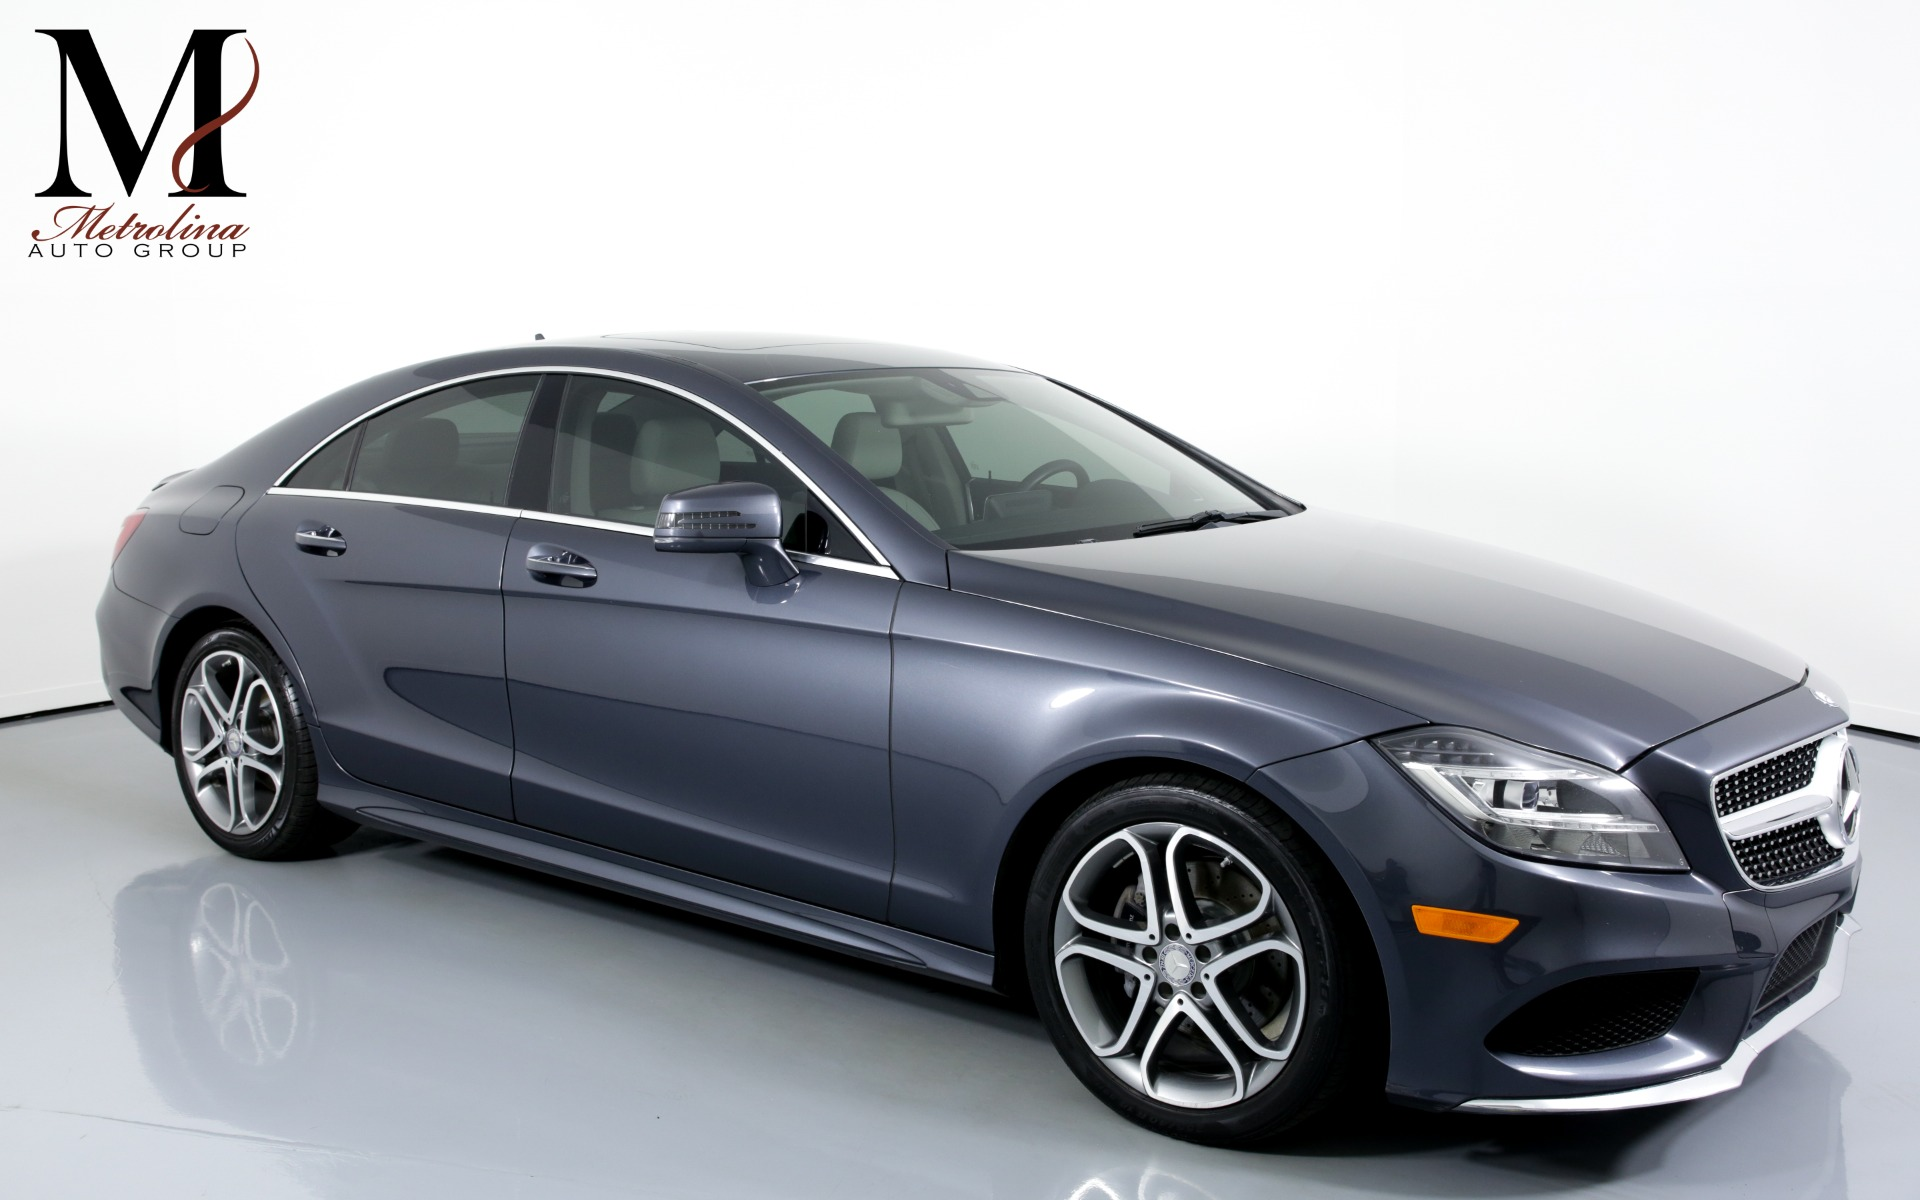 Used 2015 Mercedes-Benz CLS CLS 400 4dr Sedan for sale $29,996 at Metrolina Auto Group in Charlotte NC 28217 - 1